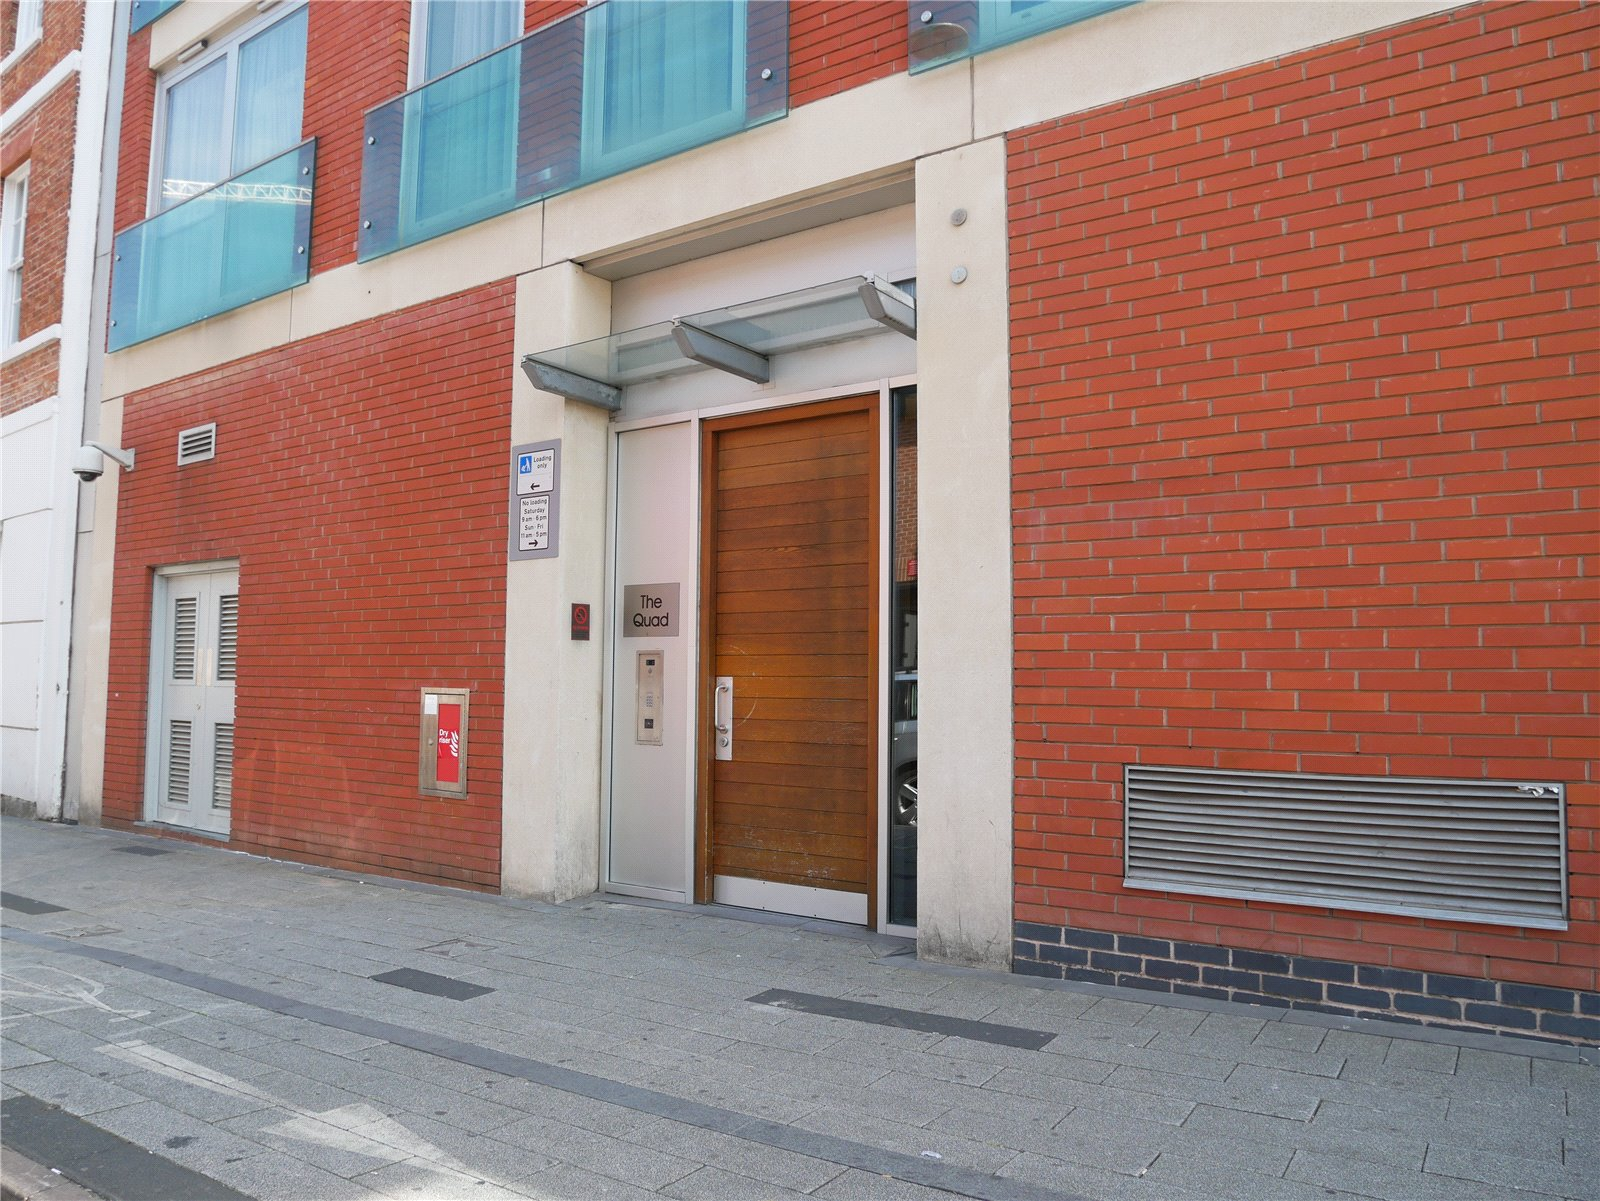 Highcross Property Investment